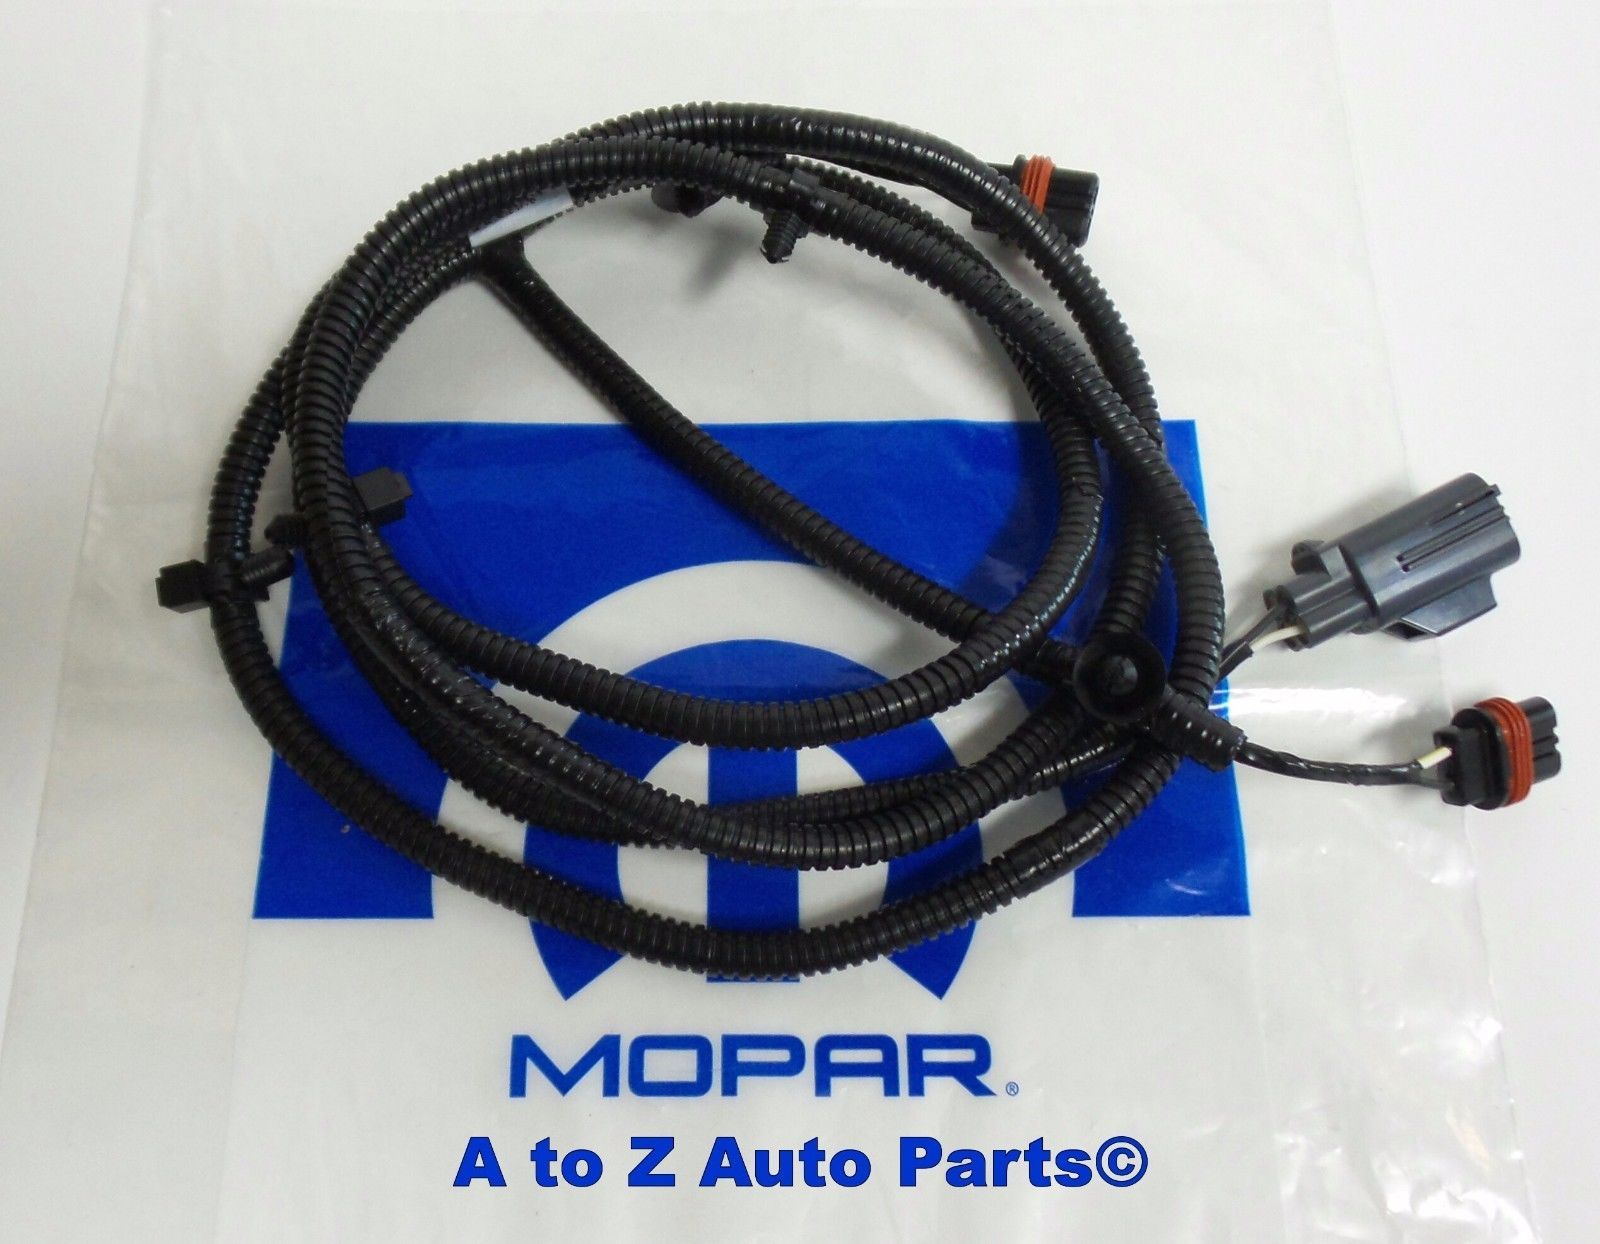 hight resolution of dodge ram fog light wiring harness wiring diagram 20022008 dodge ram 1500 truck fog light wiring harness mopar